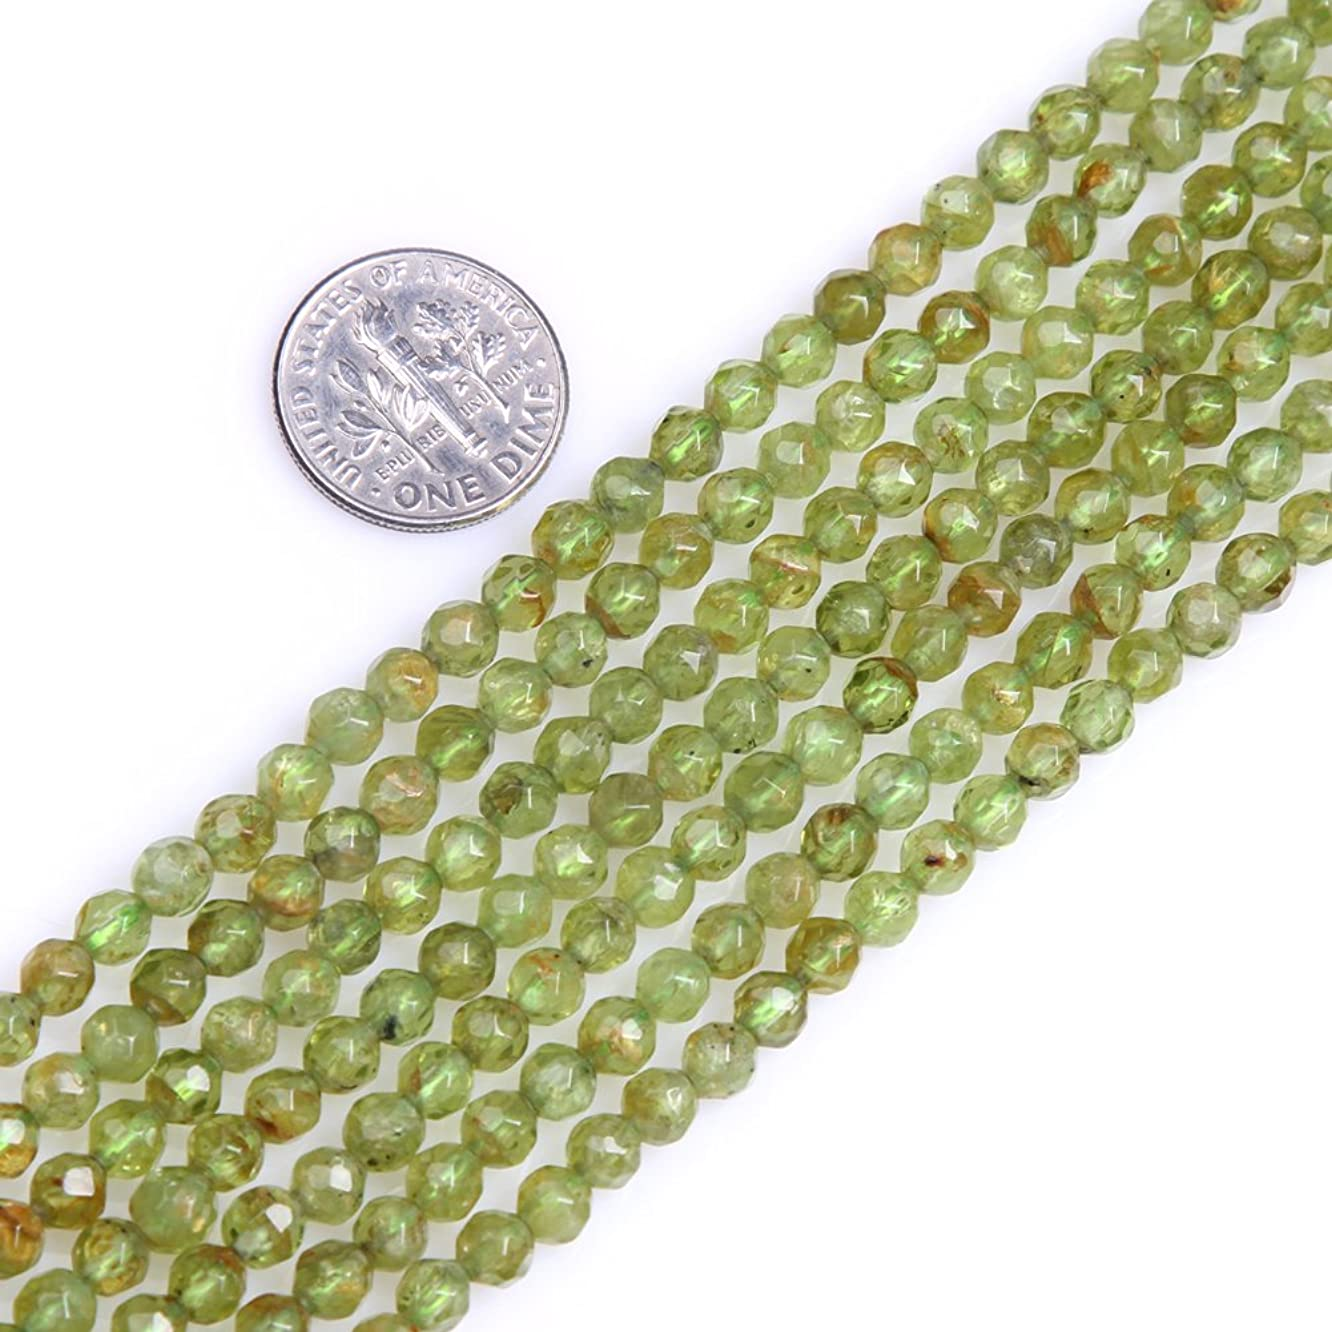 GEM-inside Natural 4mm Faceted Green Peridot Gemstone Tiny Seed Round Strand Loose Beads for Jewelry Making Jewelry Beading Supplies for Women jzgurksee009343